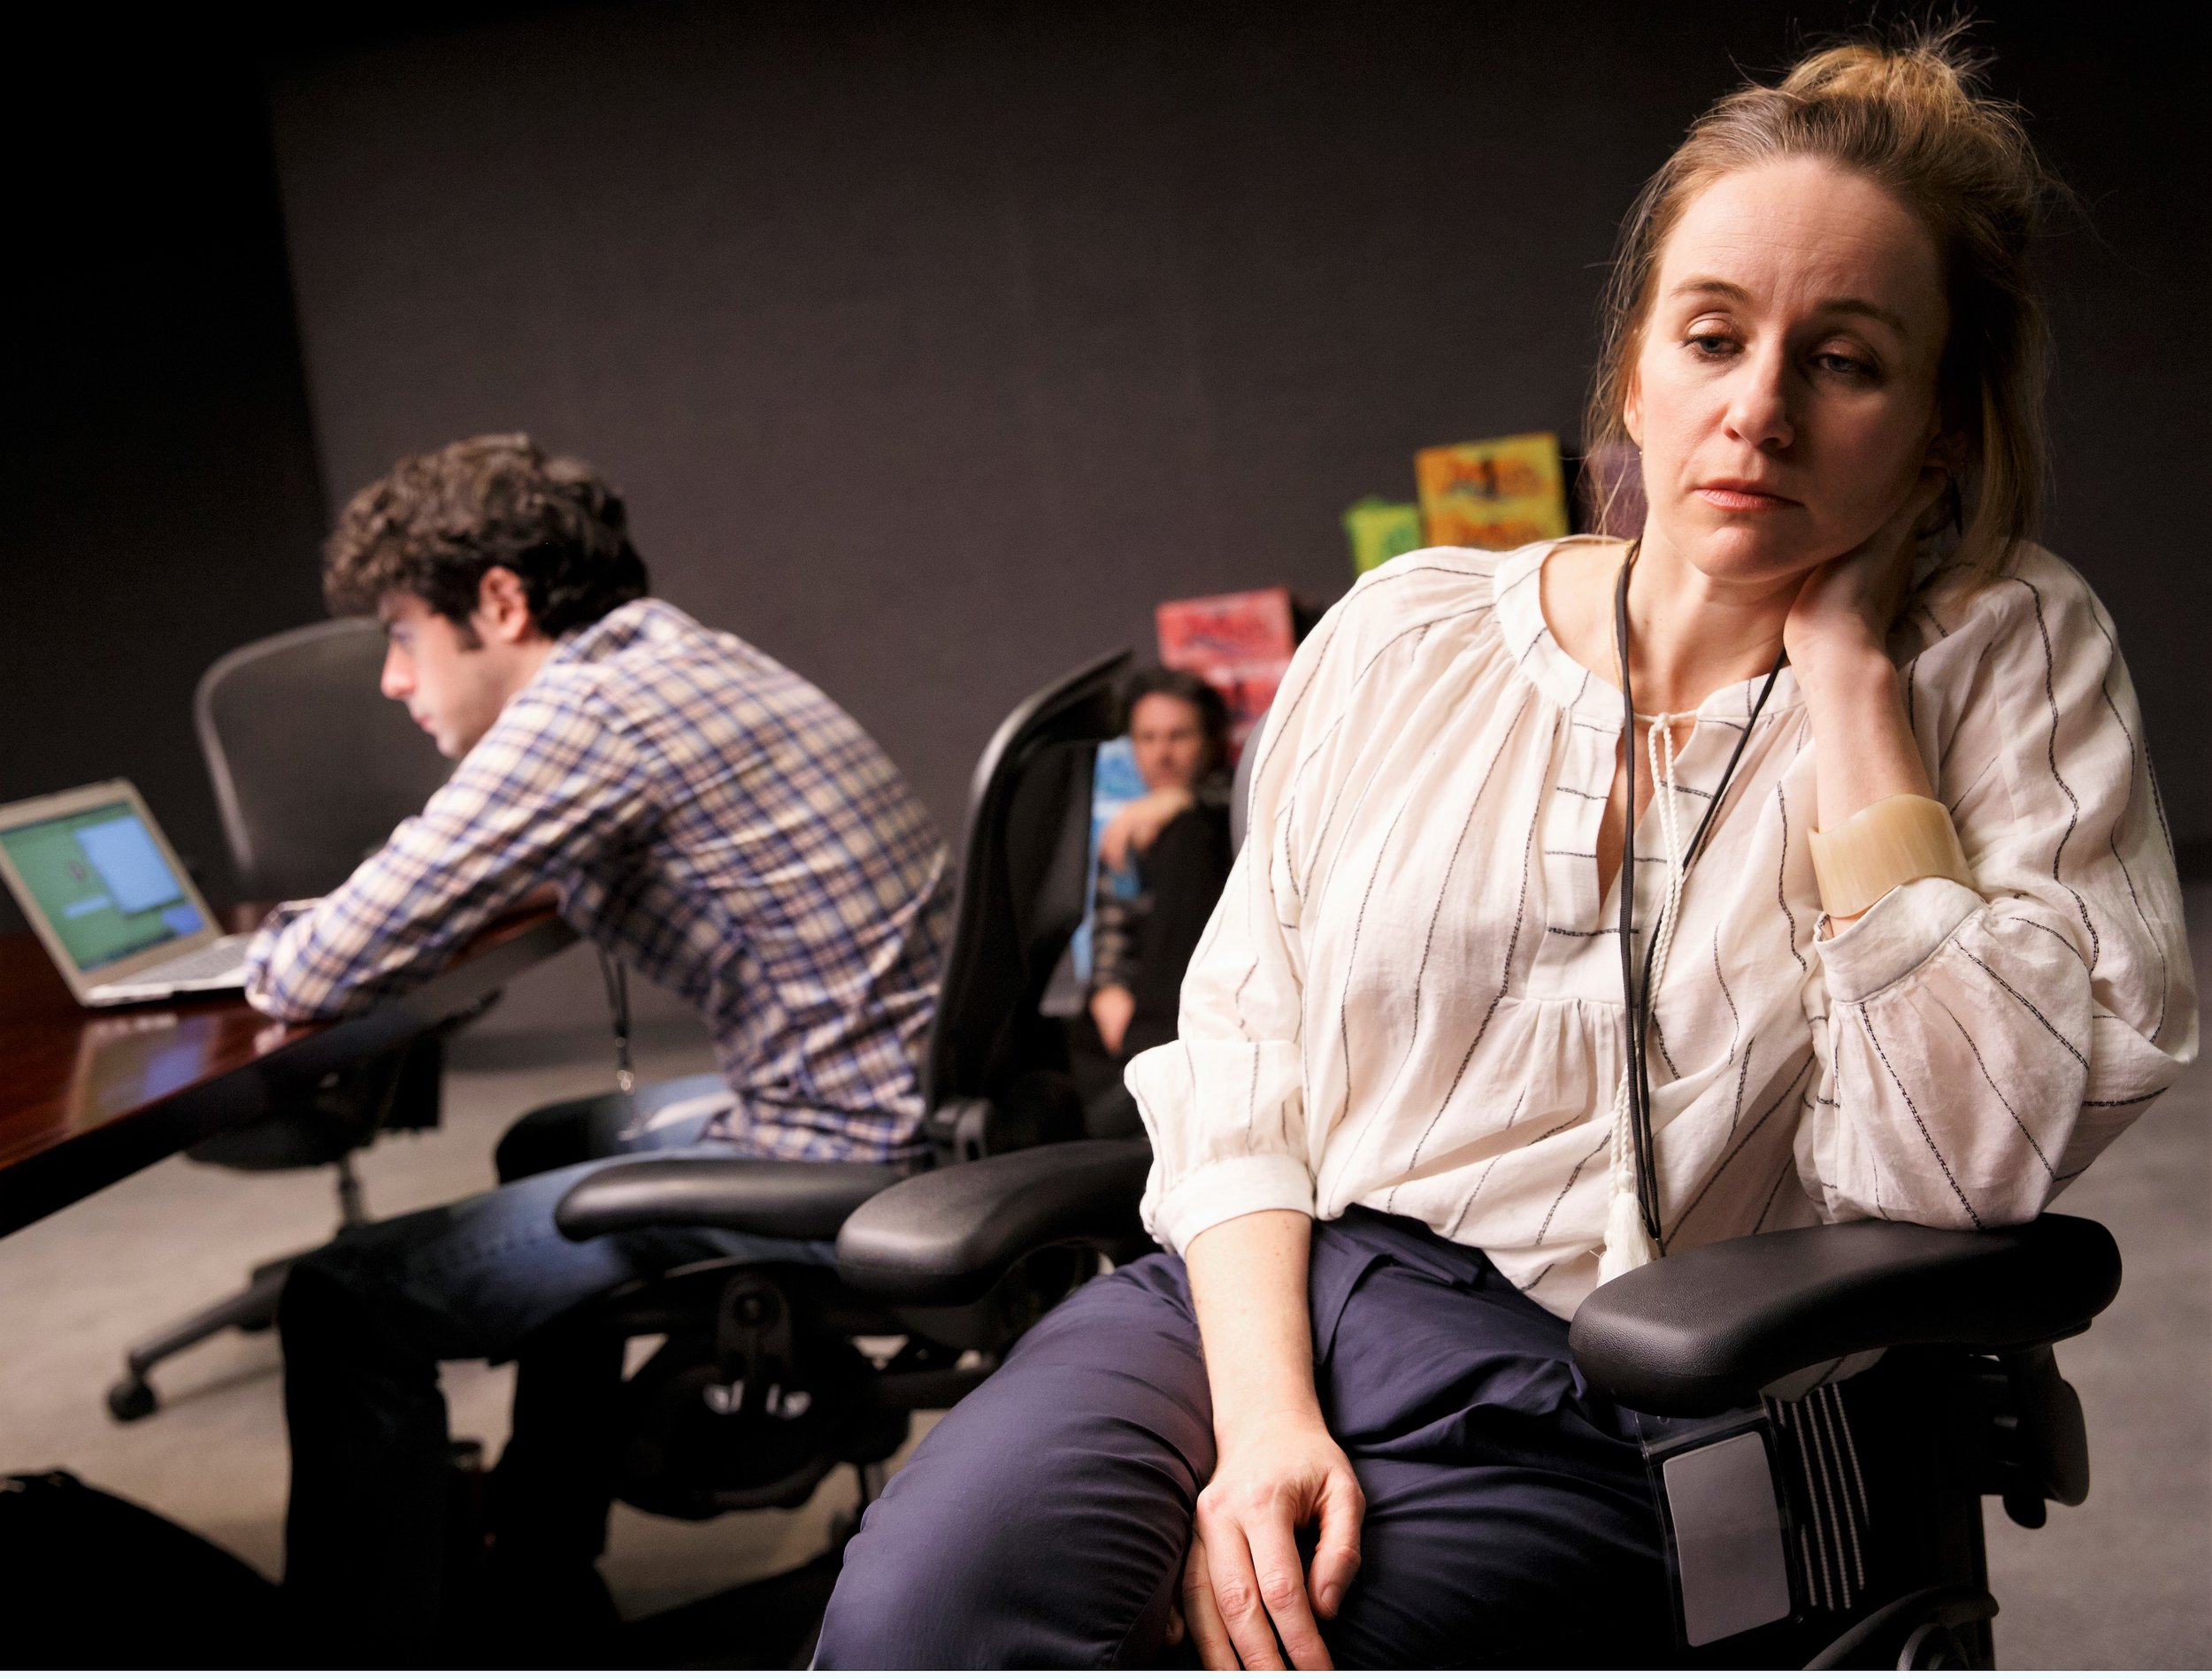 The windowless room begins to take its toll on Brian (Brian Miskell) and Eleanor (Emily Cass McDonnell). Photographs by Joan Marcus.